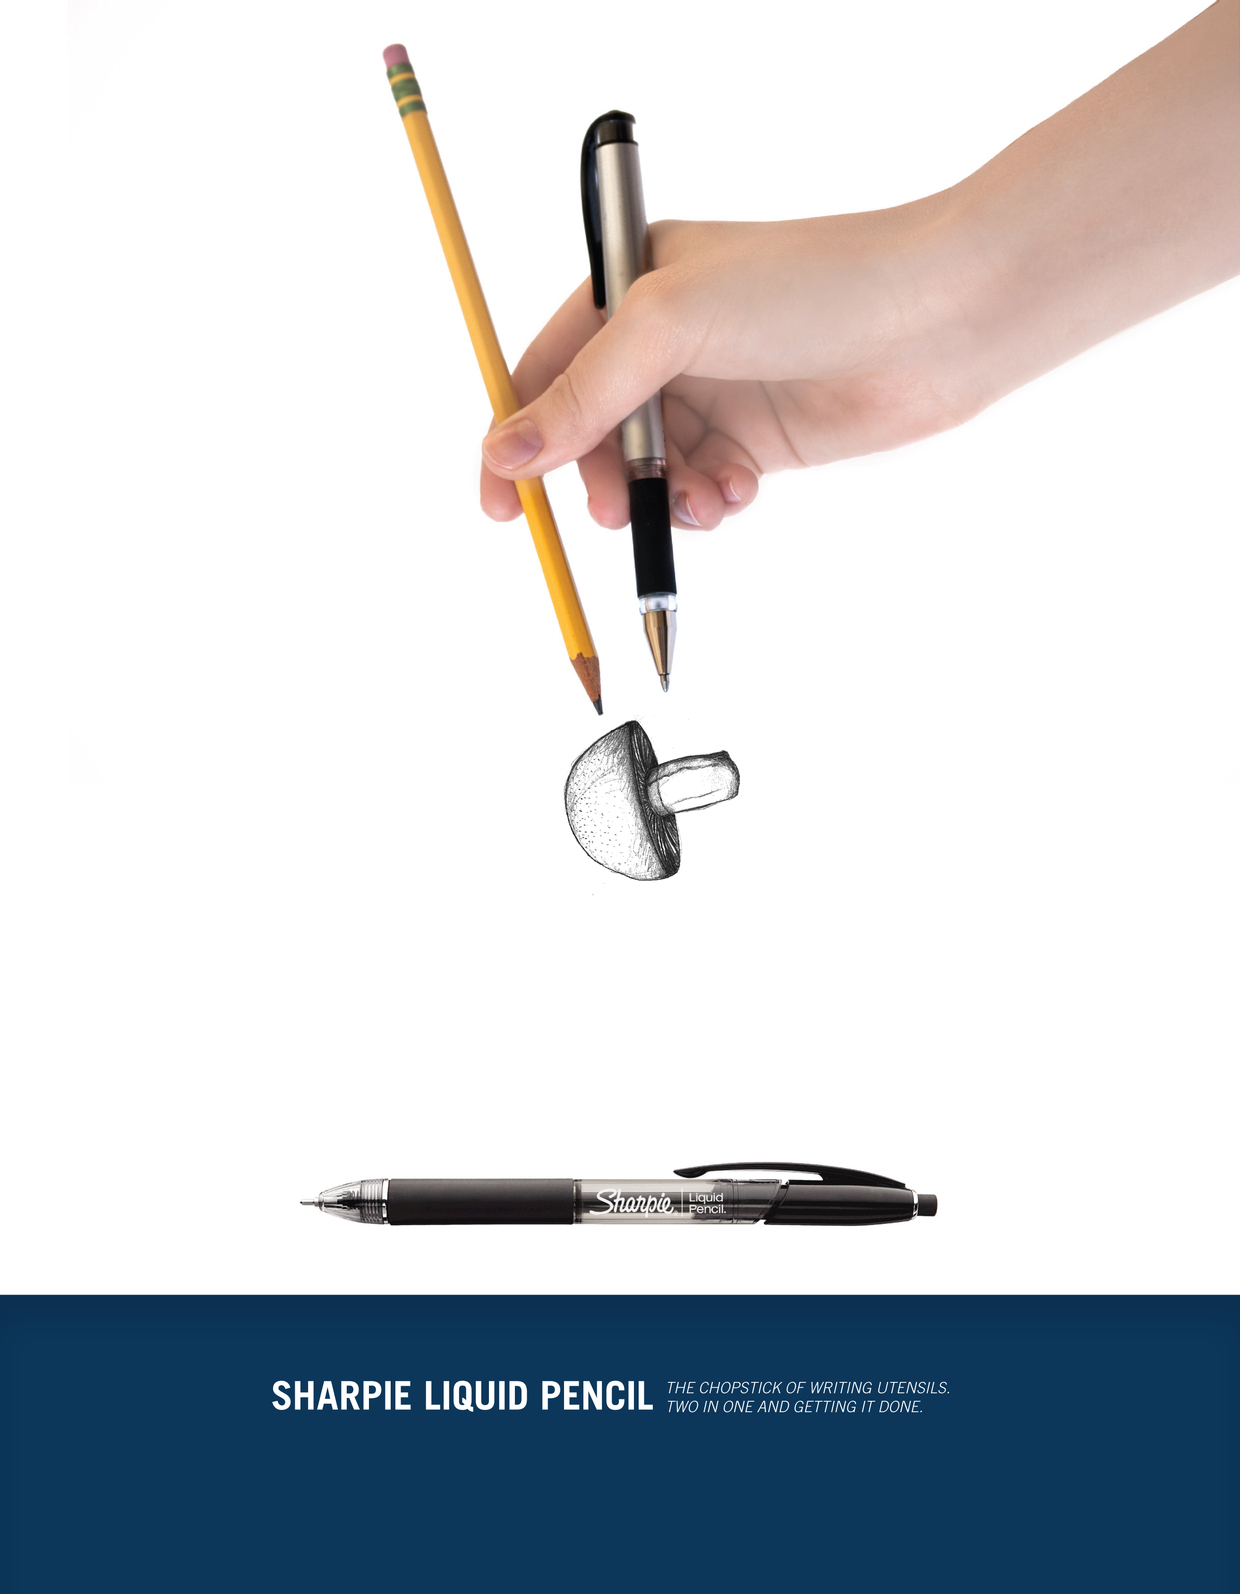 Sharpie_Print_Chopsticks.indd